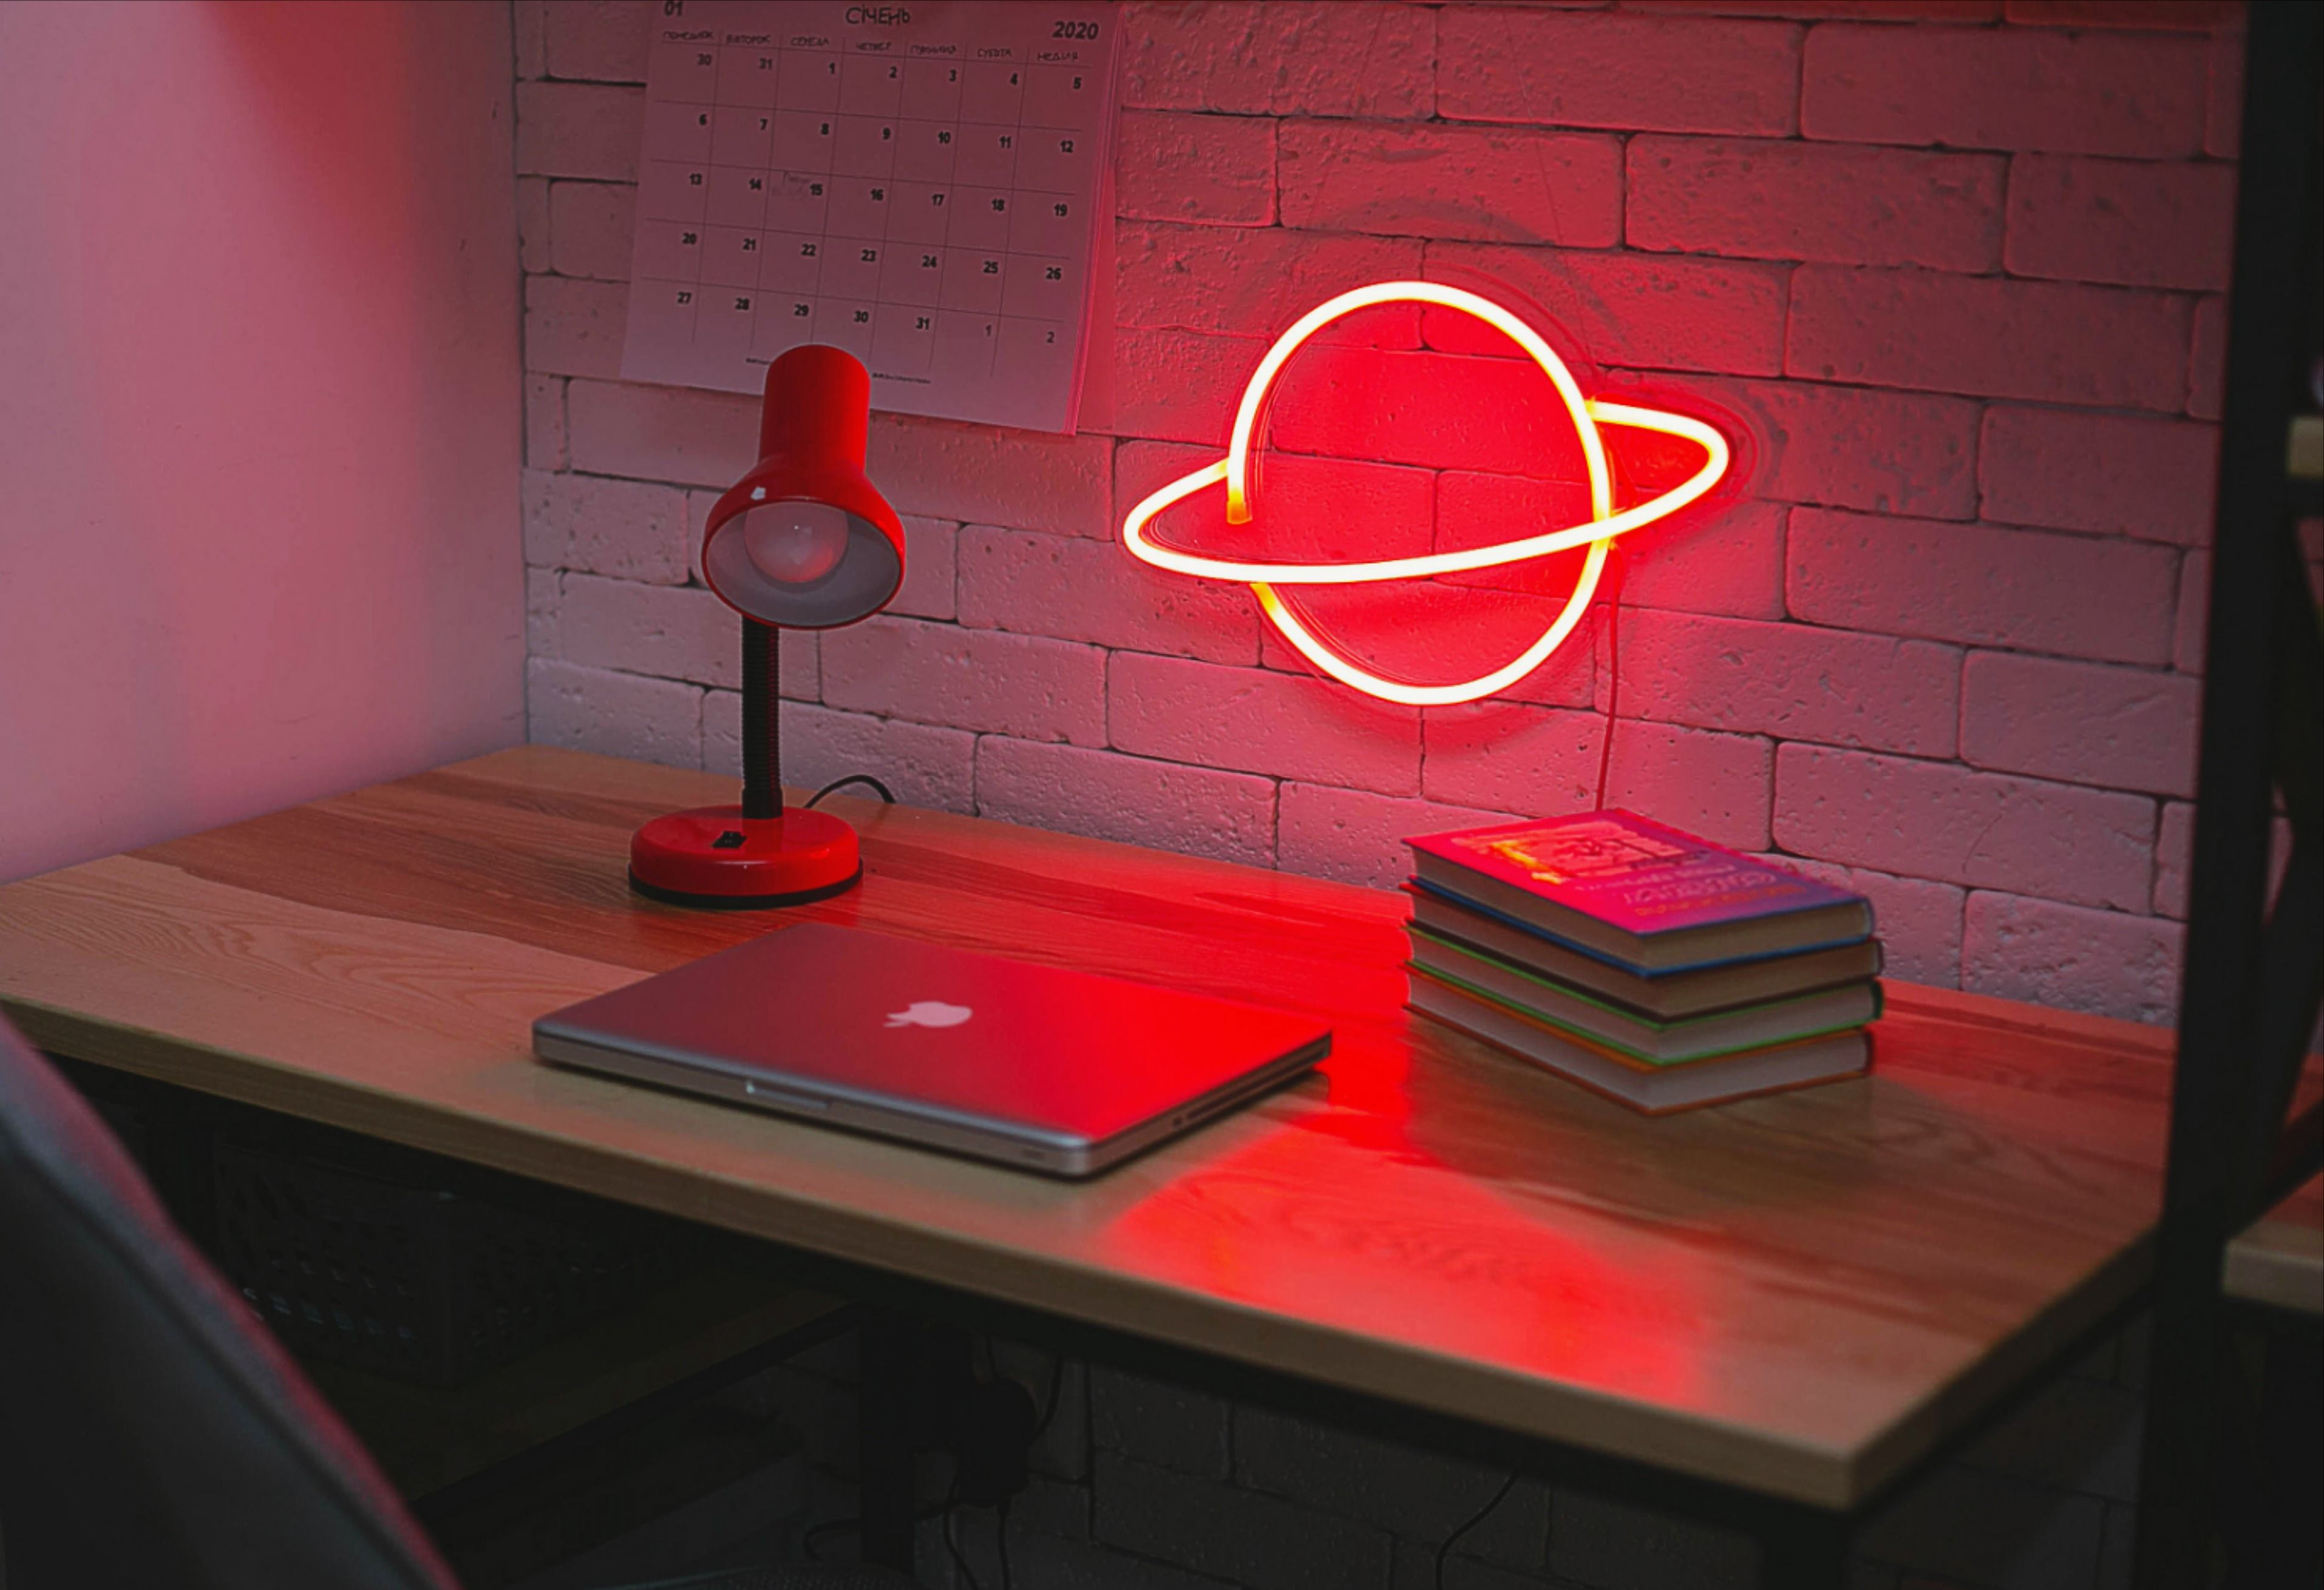 Planet Custom Led Neon Sign Custom Neon Sign Bed Light Custom Neon Sign For Home Decor Party Sign Neon Game Sign Office Sign In 2020